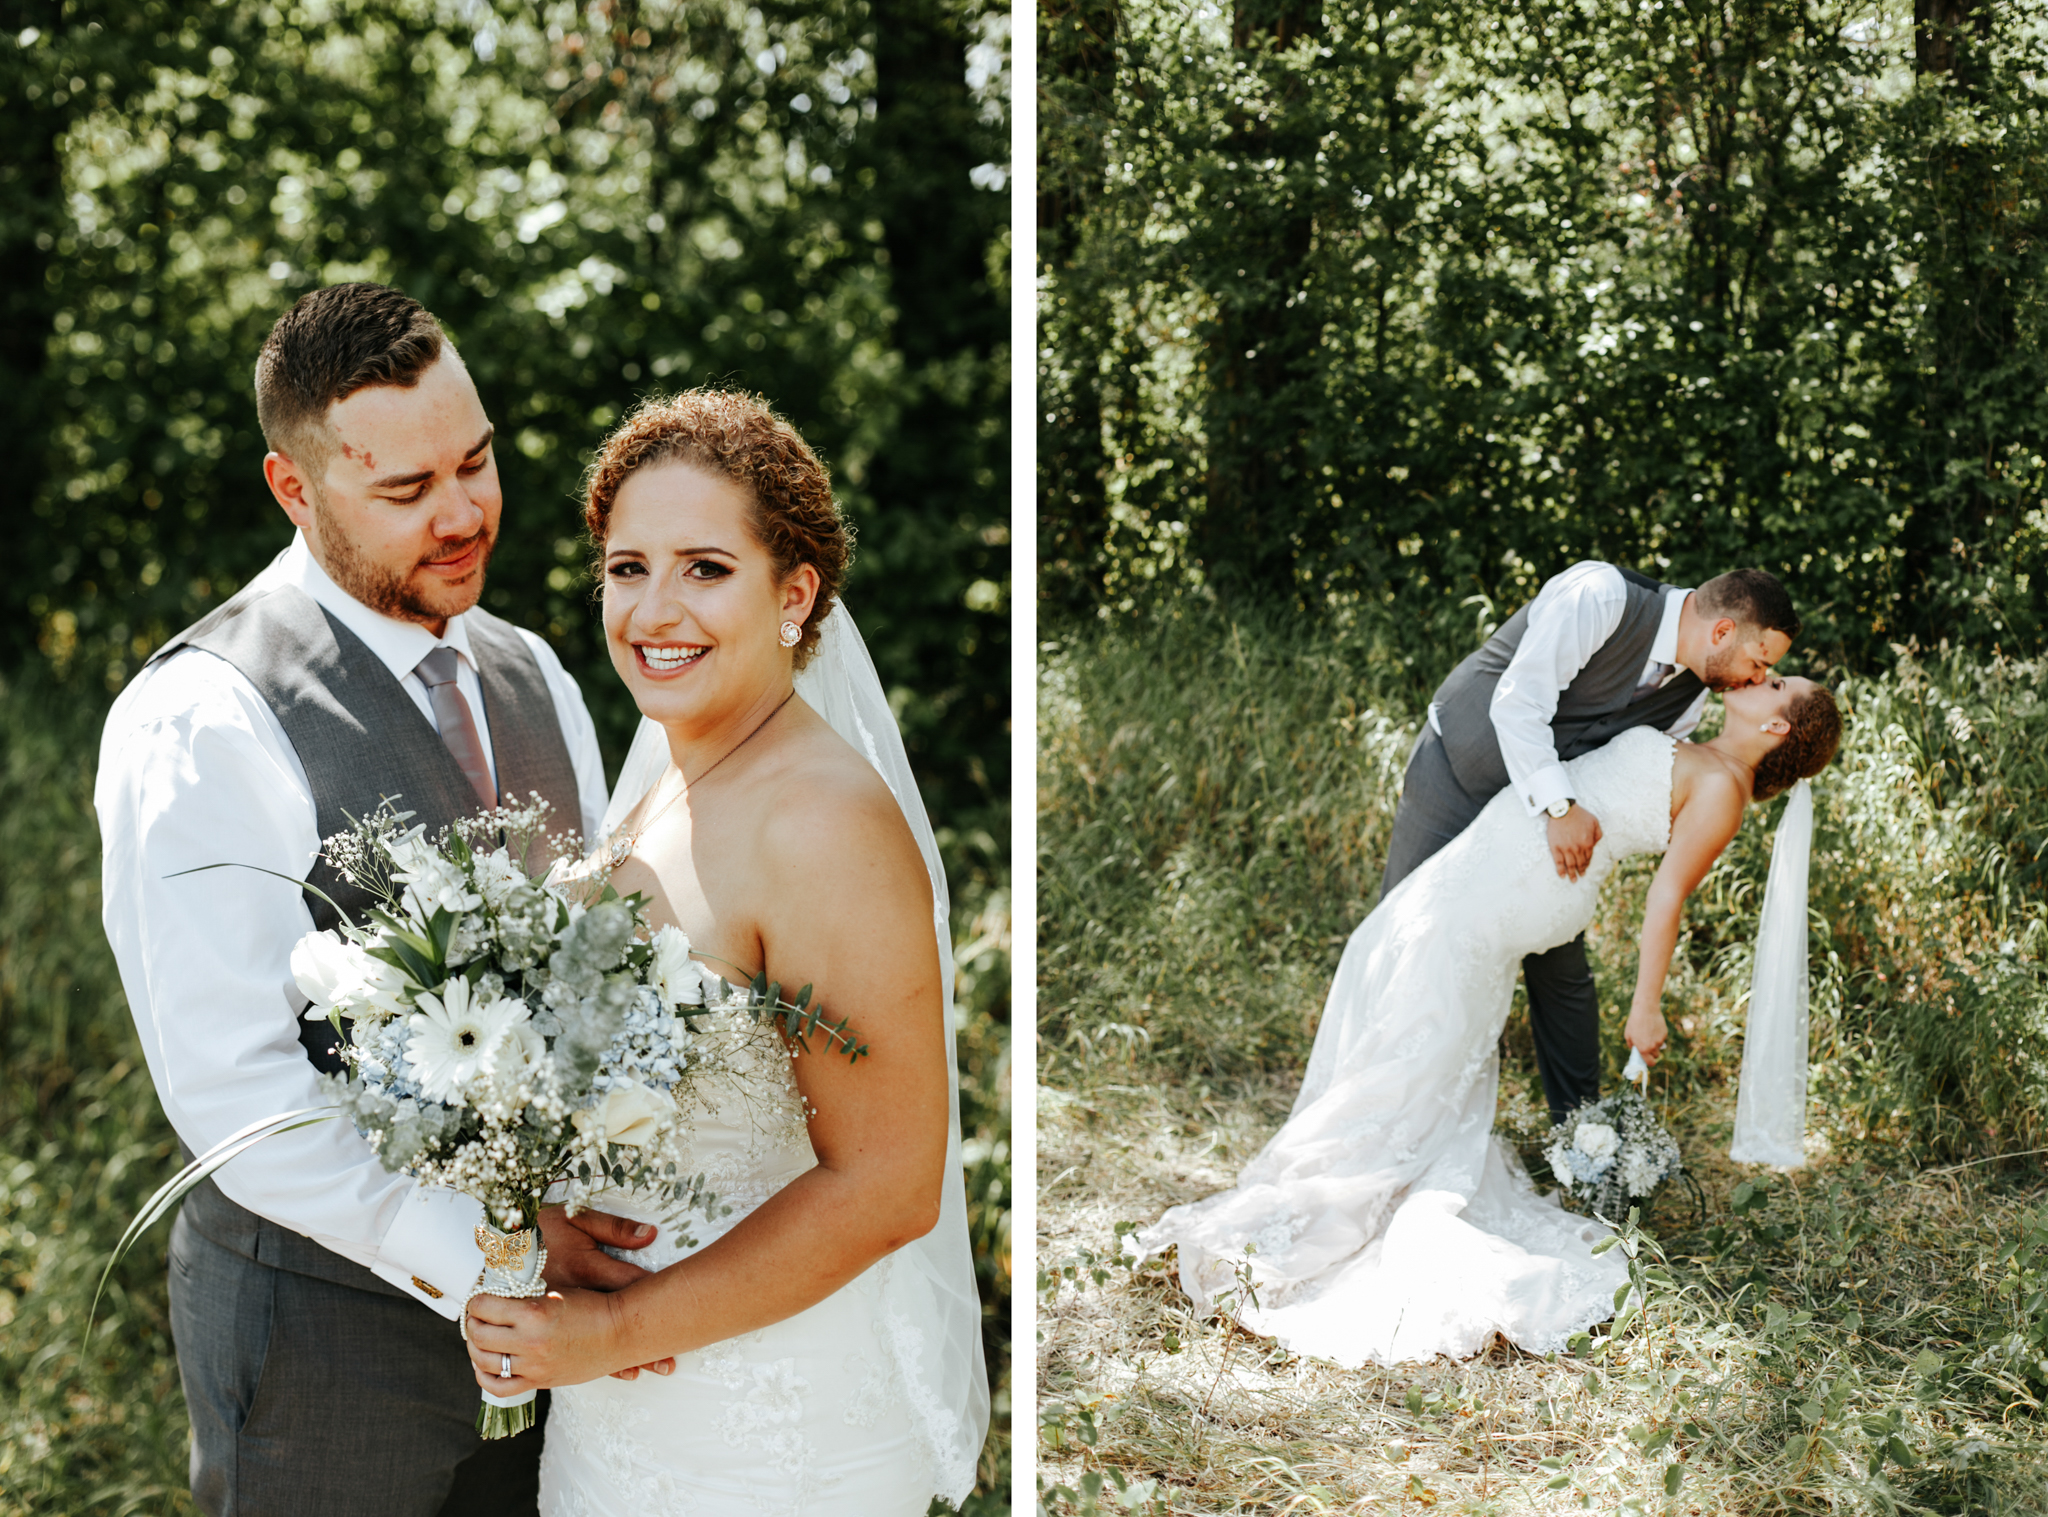 lethbridge-wedding-photographer-love-and-be-loved-photography-trent-danielle-galt-reception-picture-image-photo-137.jpg